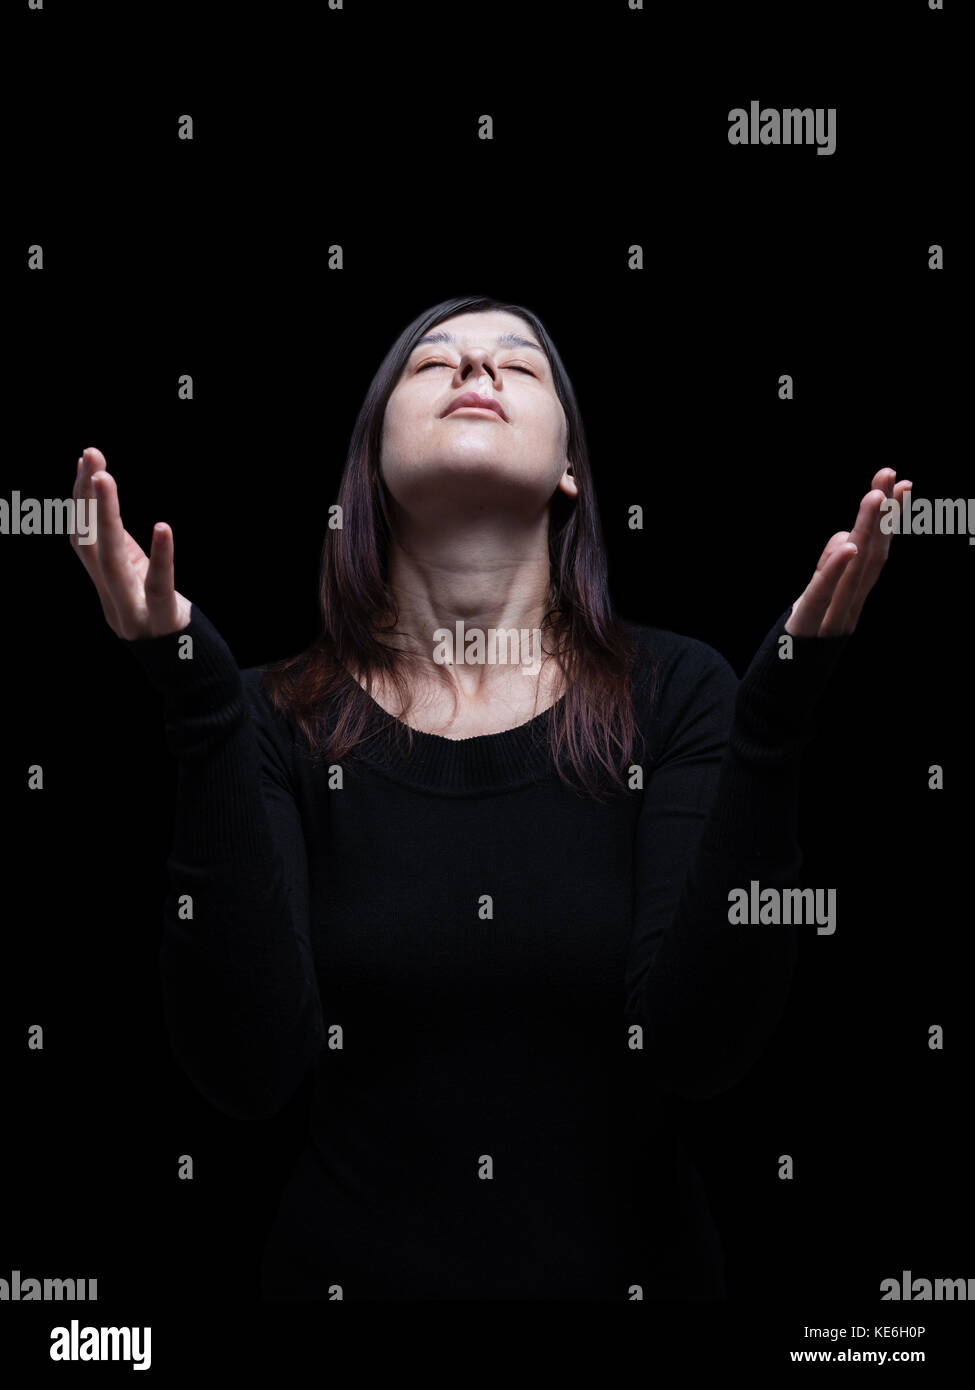 Mourning woman praying with arms outstretched in worship to god. Looking up, eyes closed in suffering. Black background - Stock Image